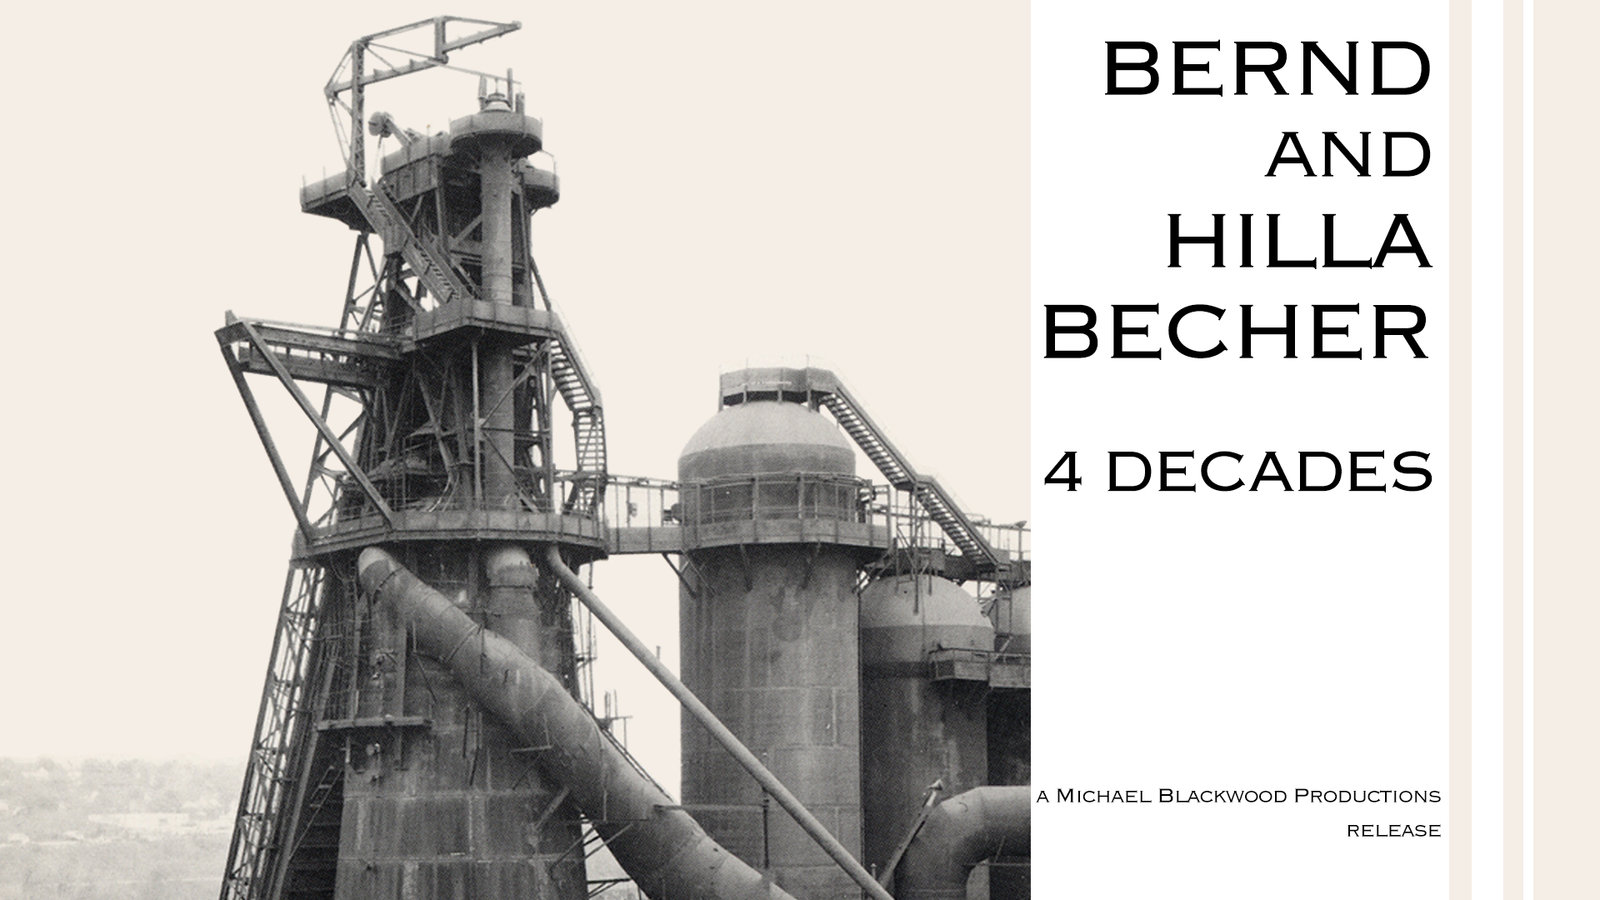 Bernd and Hilla Becher: 4 Decades - Typologies of Industrial Buidlings